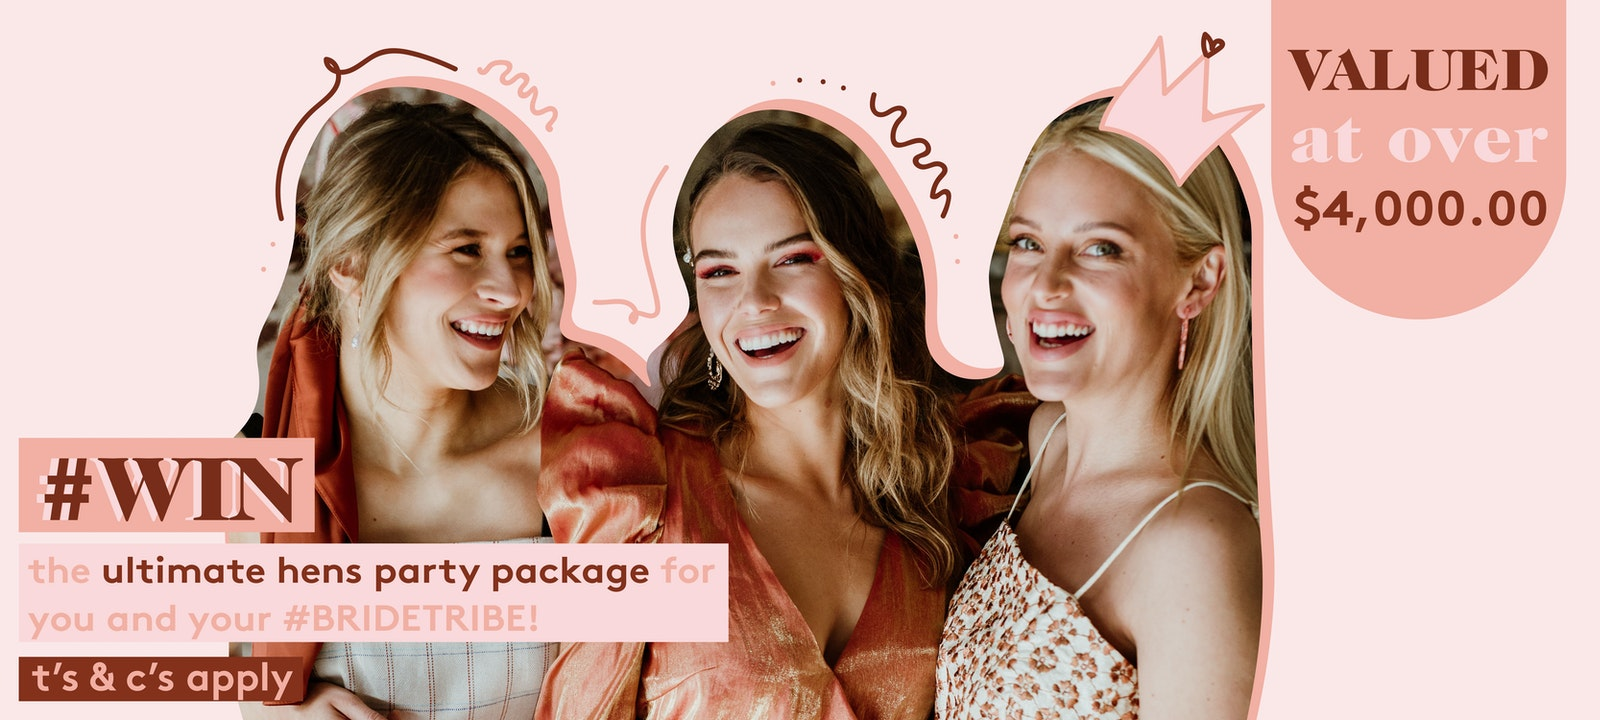 WIN THE ULTIMATE HEN'S PARTY PACKAGE FOR YOU AND BRIDE TRIBE | LENZO